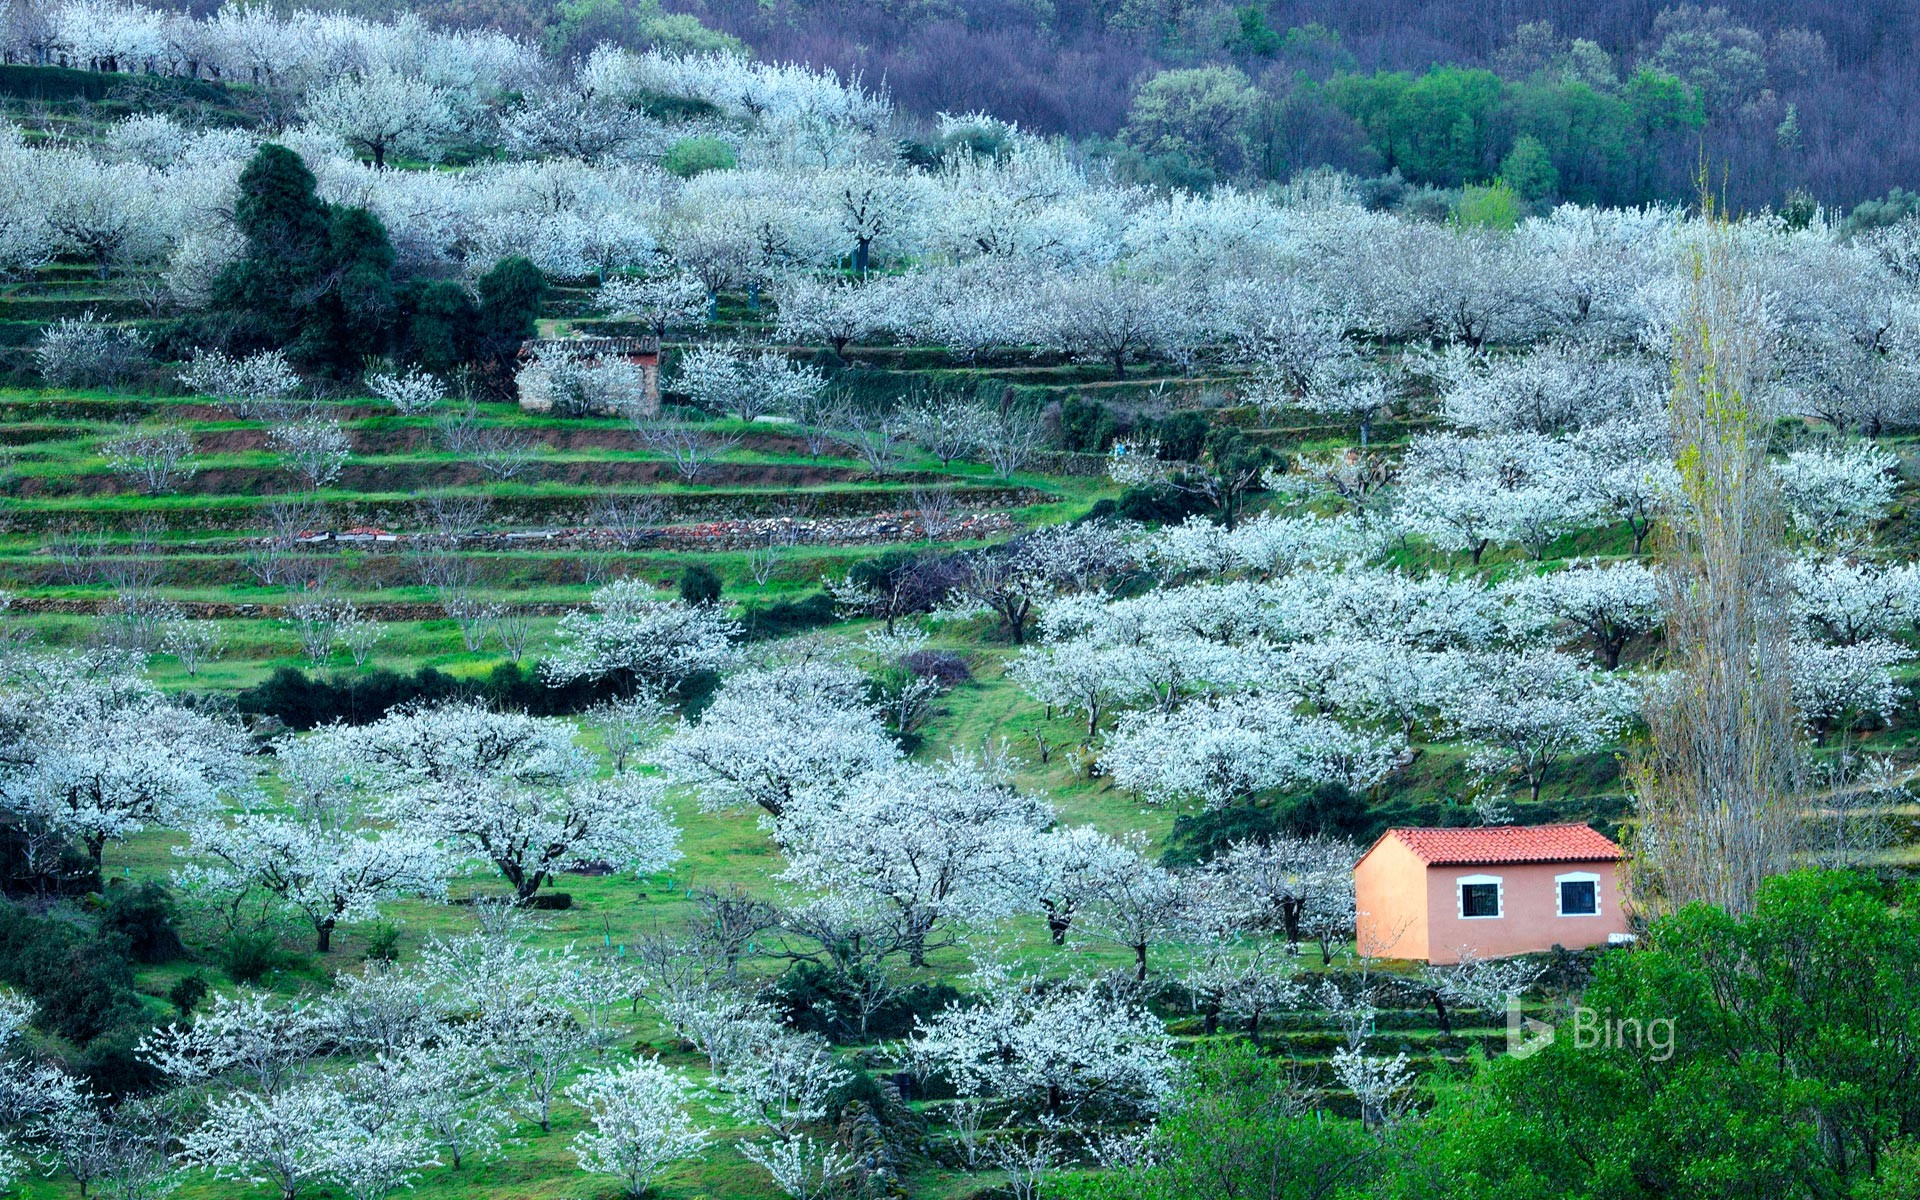 Blooming cherry trees in the Jerte Valley, province of Cáceres, Spain